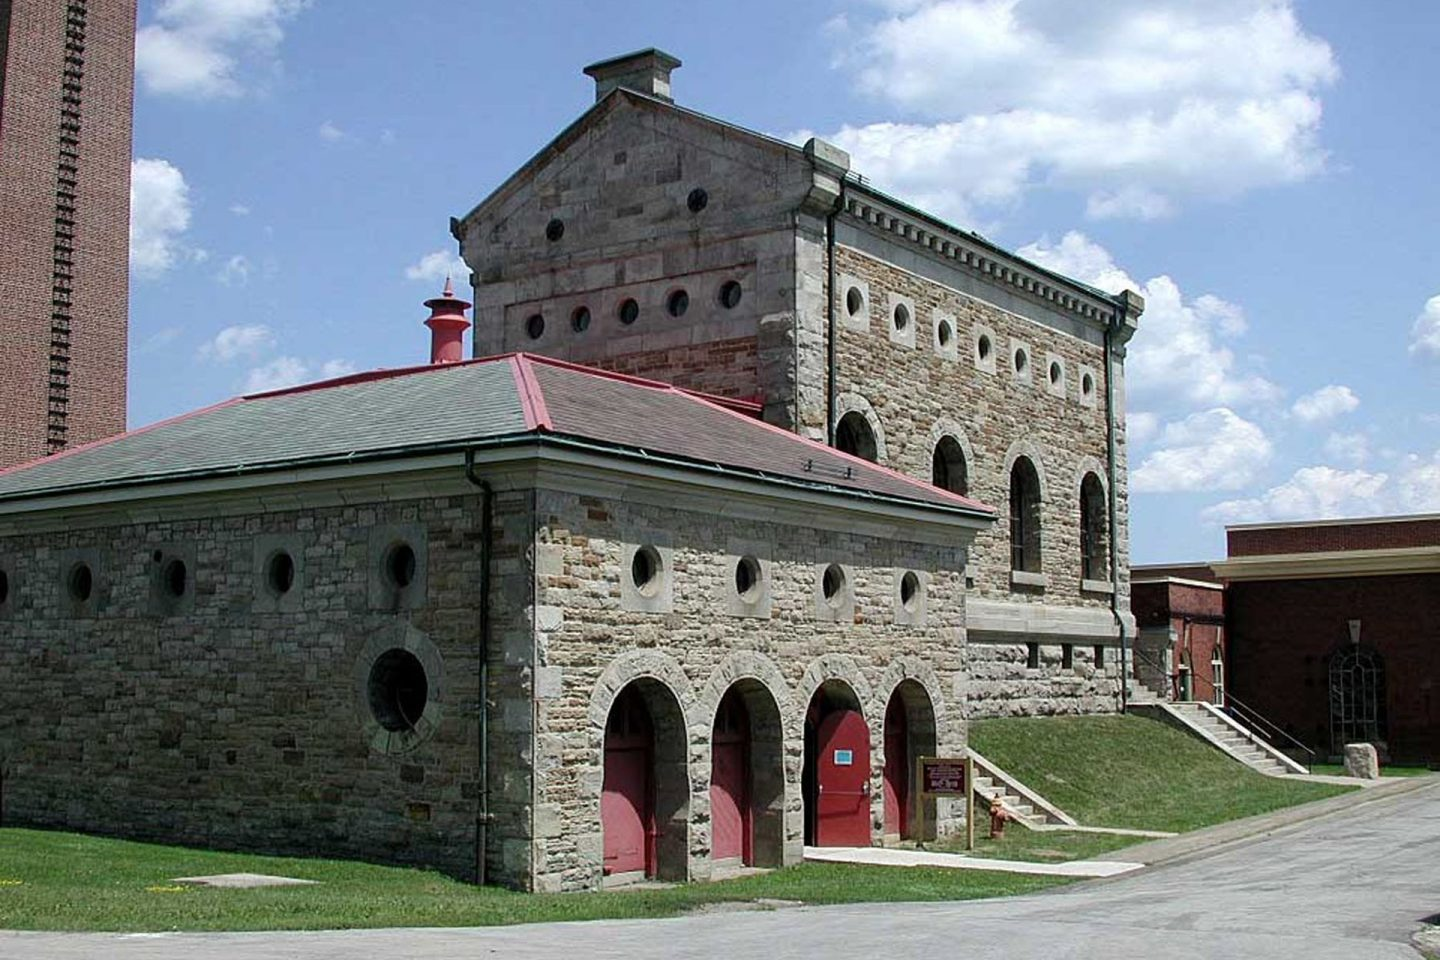 Hamilton Museum of Steam & Technology - National Historic Site